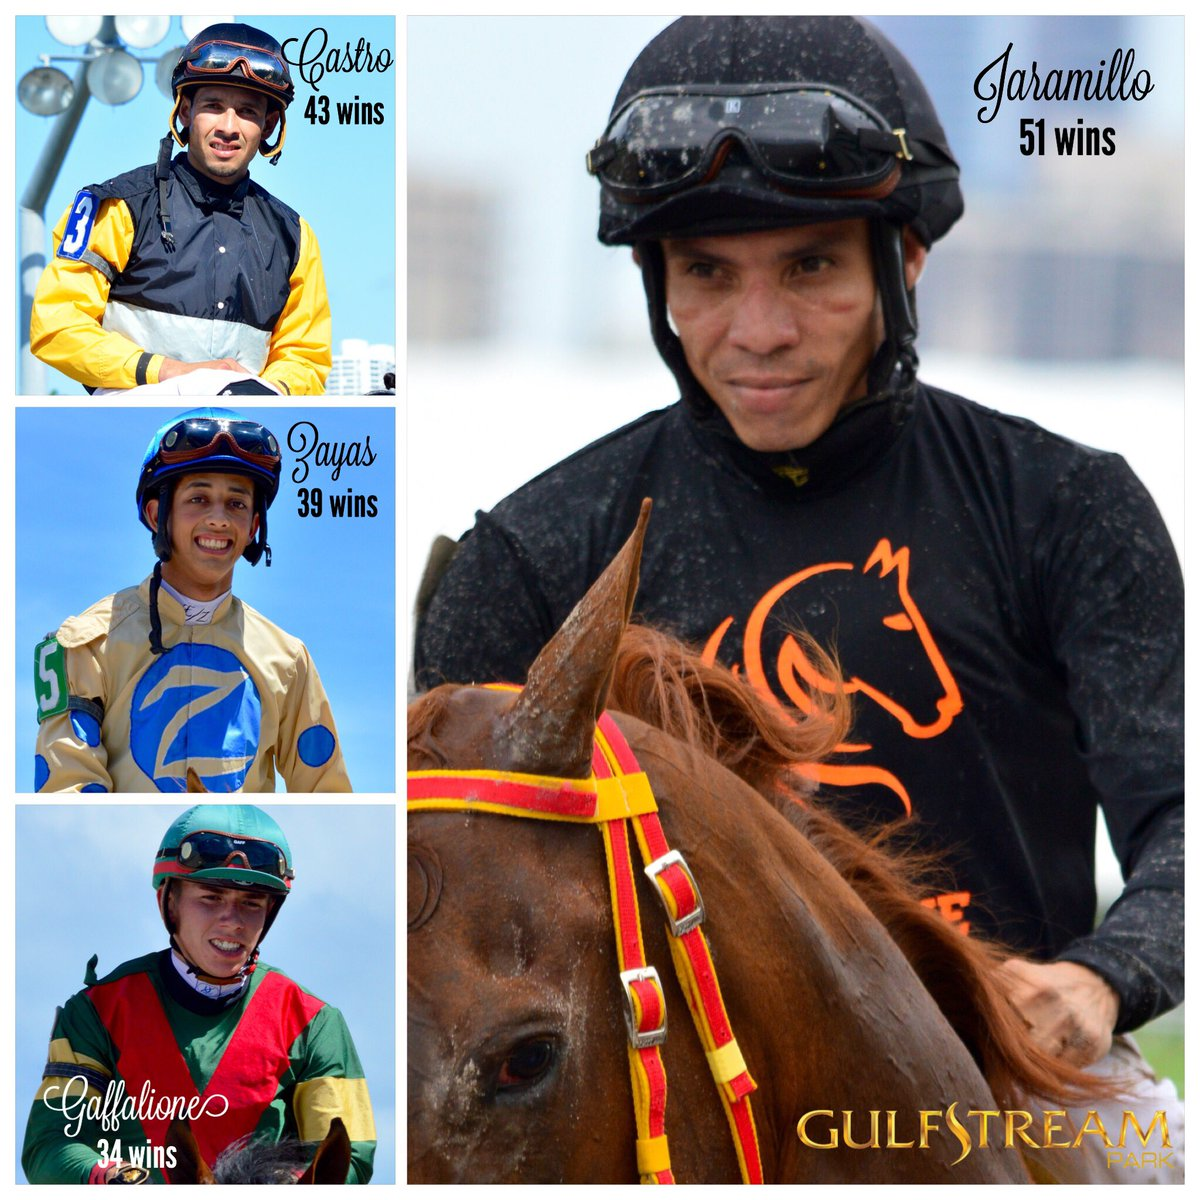 #GulfstreamPark Top Jockeys, up to 6/12 @jaramillojockey (VEN) in front with 51 wins, data of @Equibase https://t.co/1oB3hqbesN